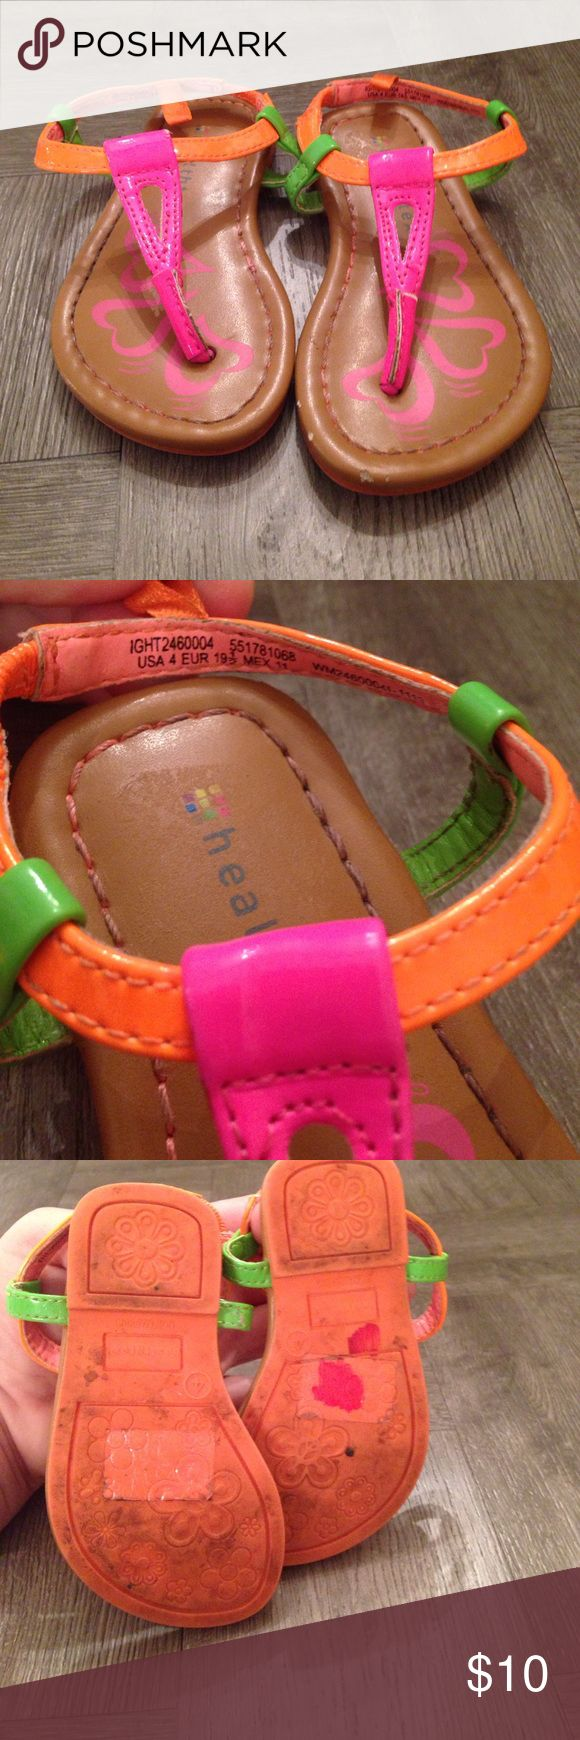 Girl's Neon Sandals (toddler size 4) Super cute good condition neon sandals by healthtex size 4. Some scuffs here and there, but still super cute shoes. healthtex Shoes Sandals & Flip Flops